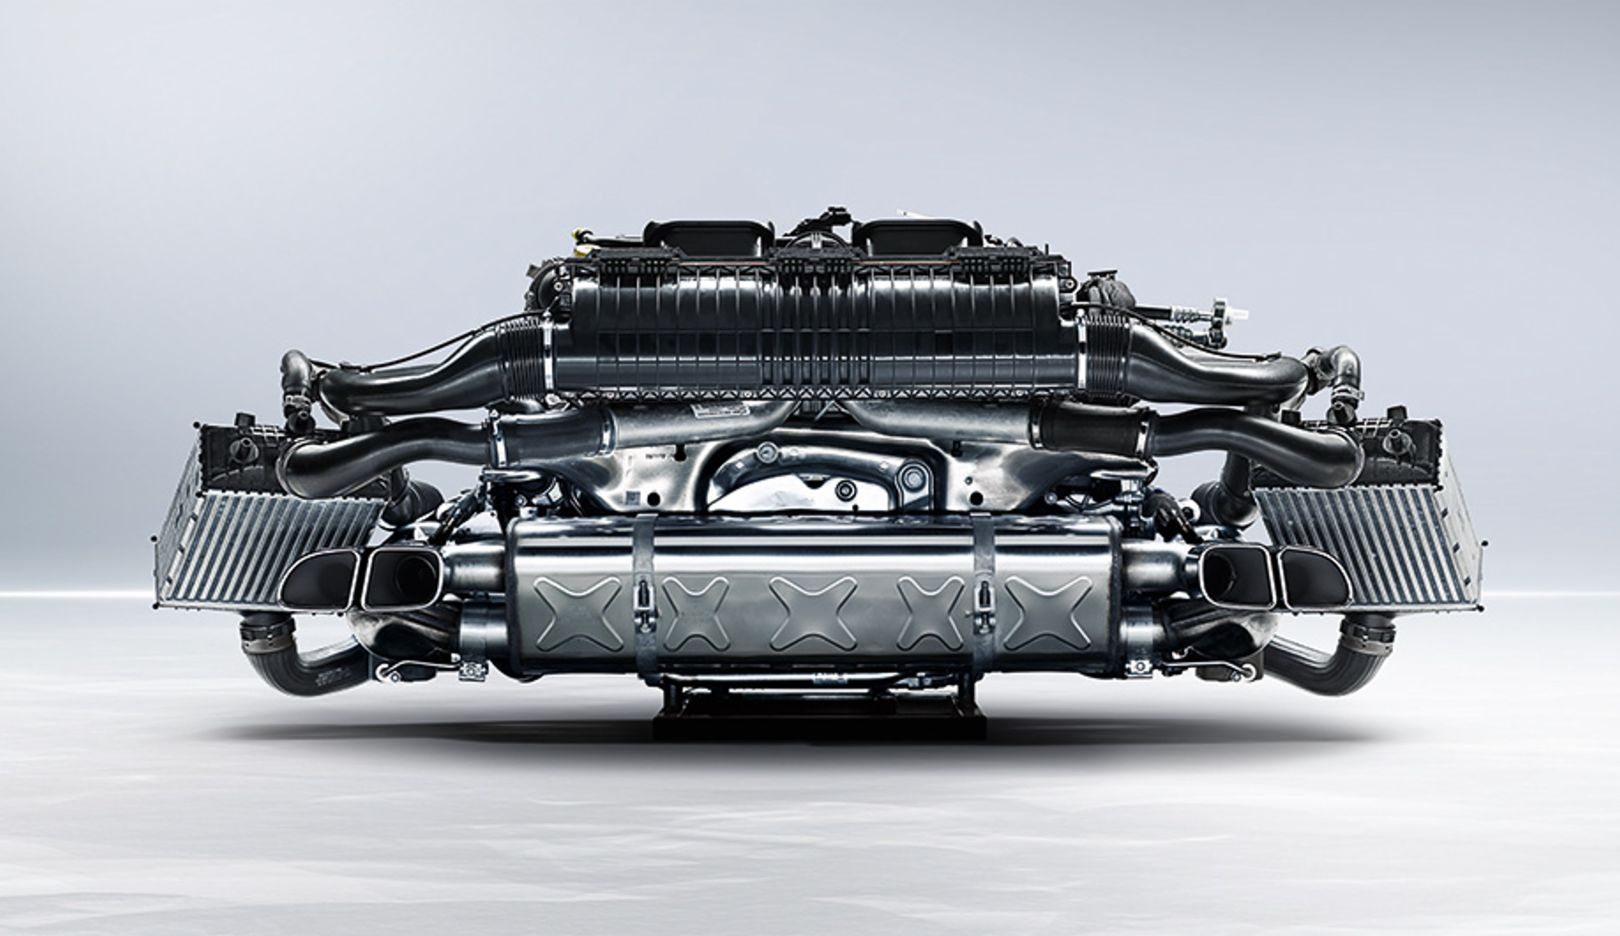 Boxer engines in the 911 Turbo, 2014, Porsche AG